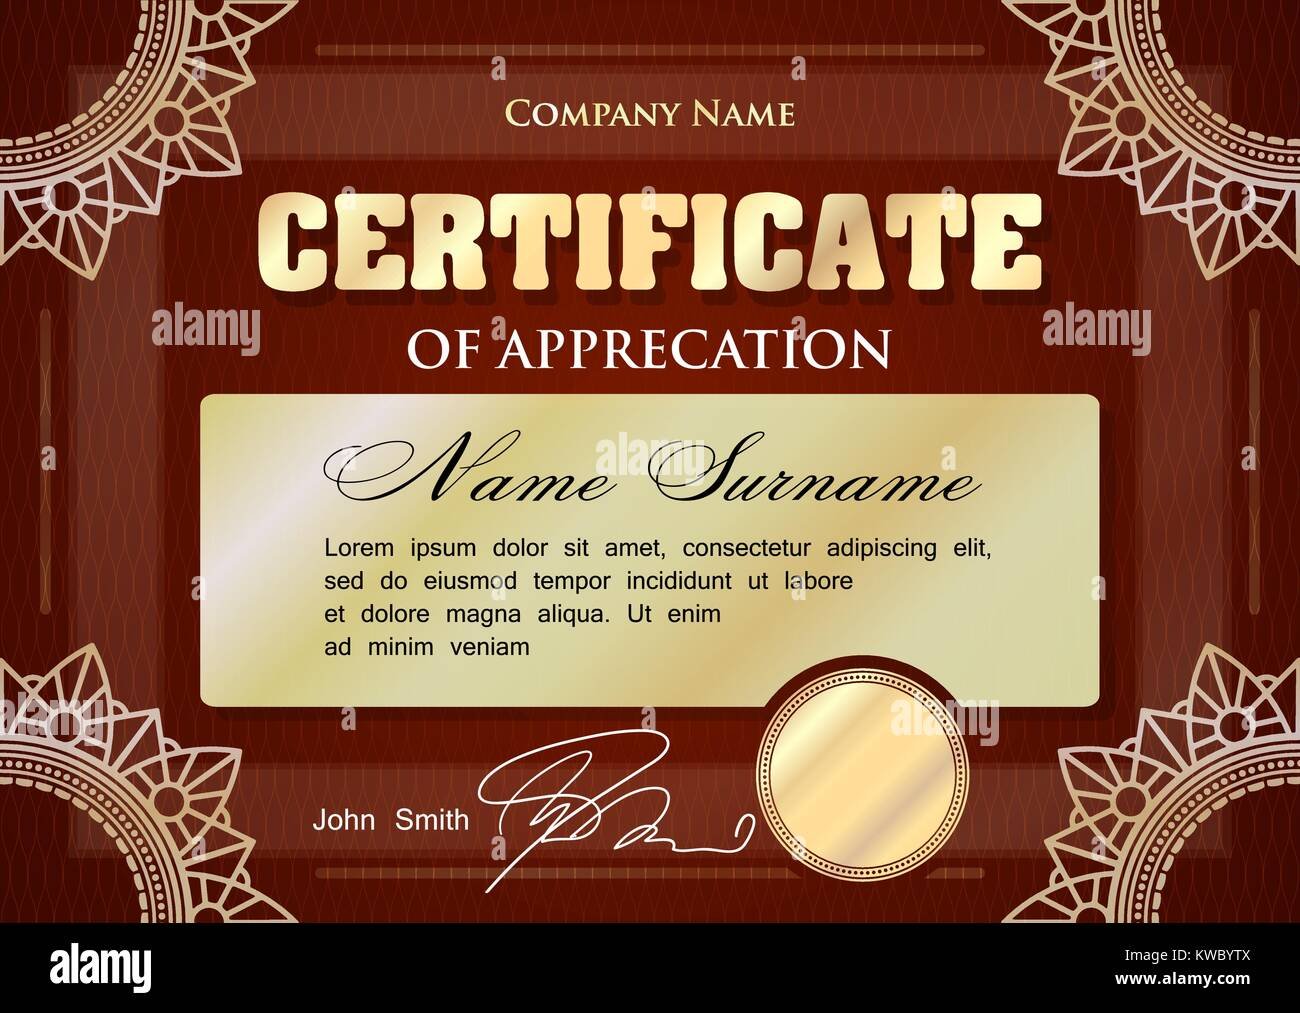 Shares Certificate Stockfotos & Shares Certificate Bilder - Alamy